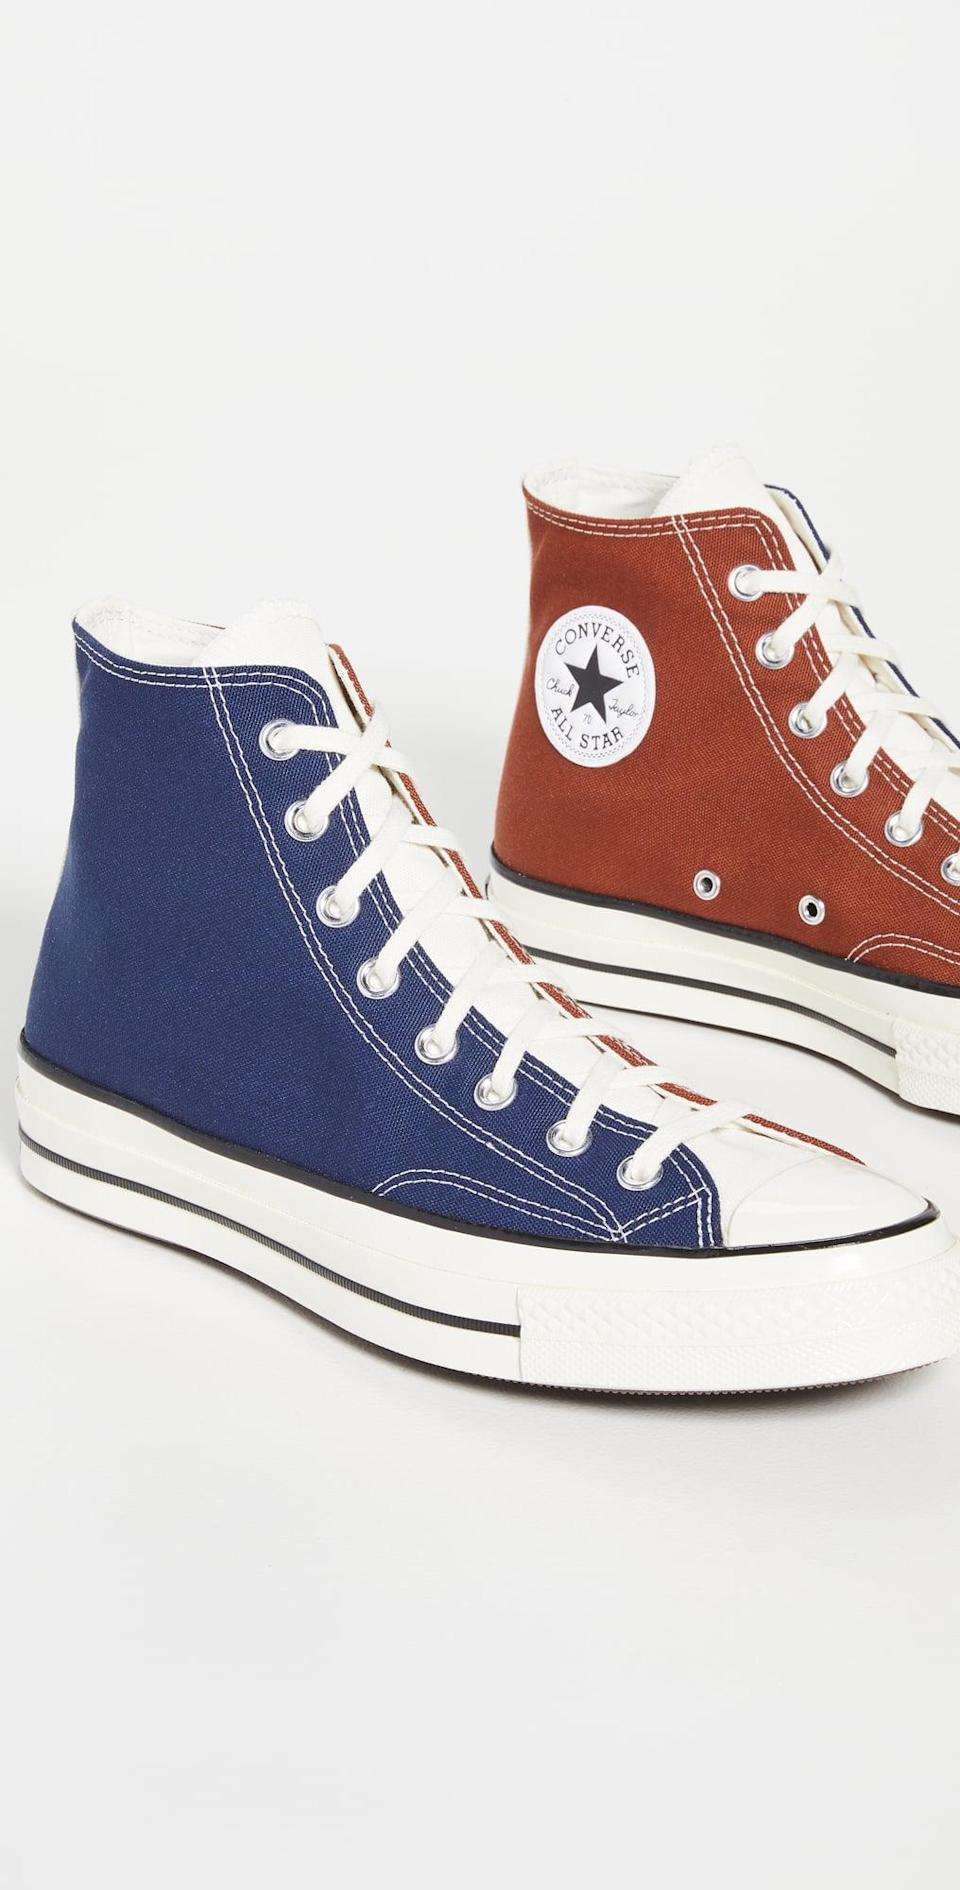 <p>These <span>Converse Hybrid Texture Chuck 70 Sneakers</span> ($85) are extremely practical, but we love the colorful update on the classic style. They are a fun way to enliven your shoe collection.</p>